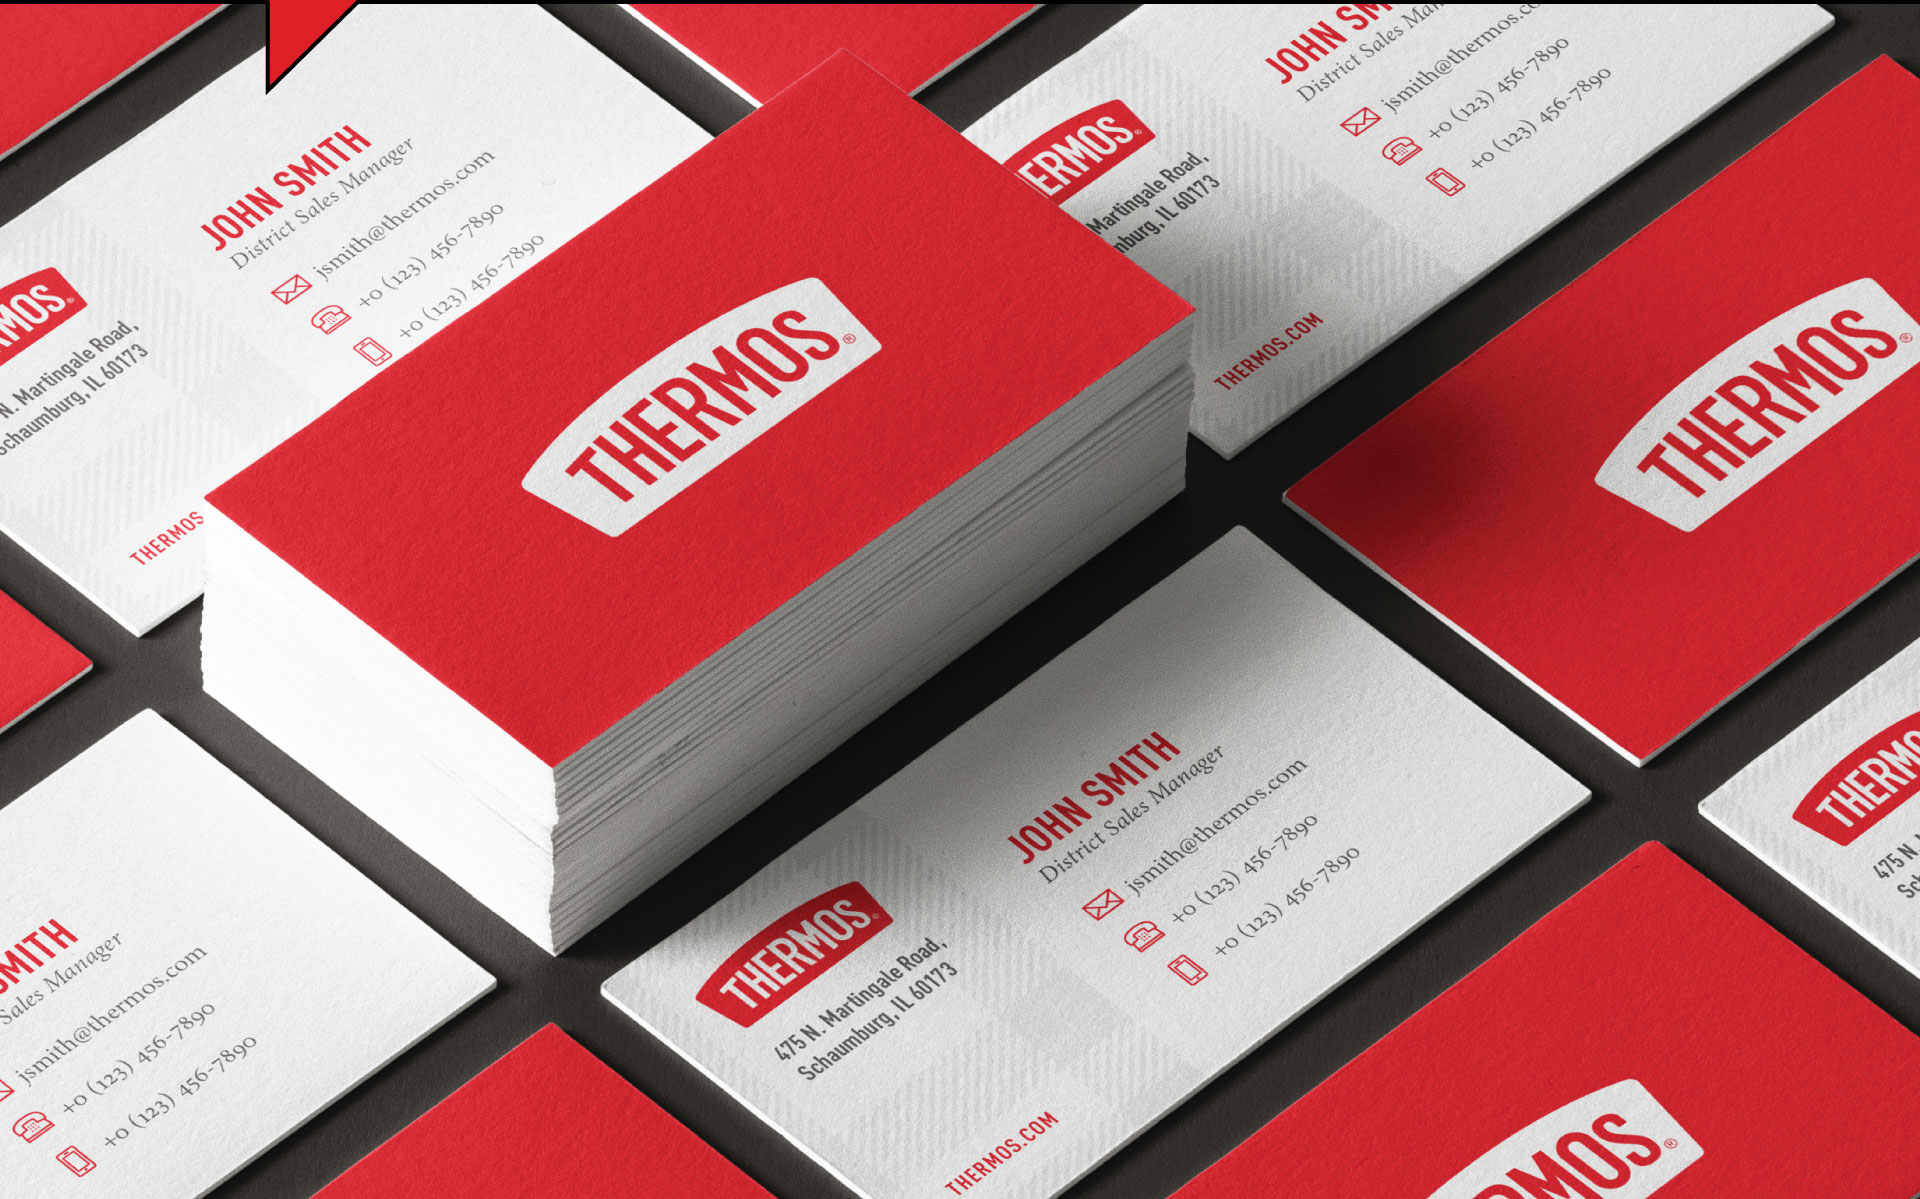 Thermos - Business Cards